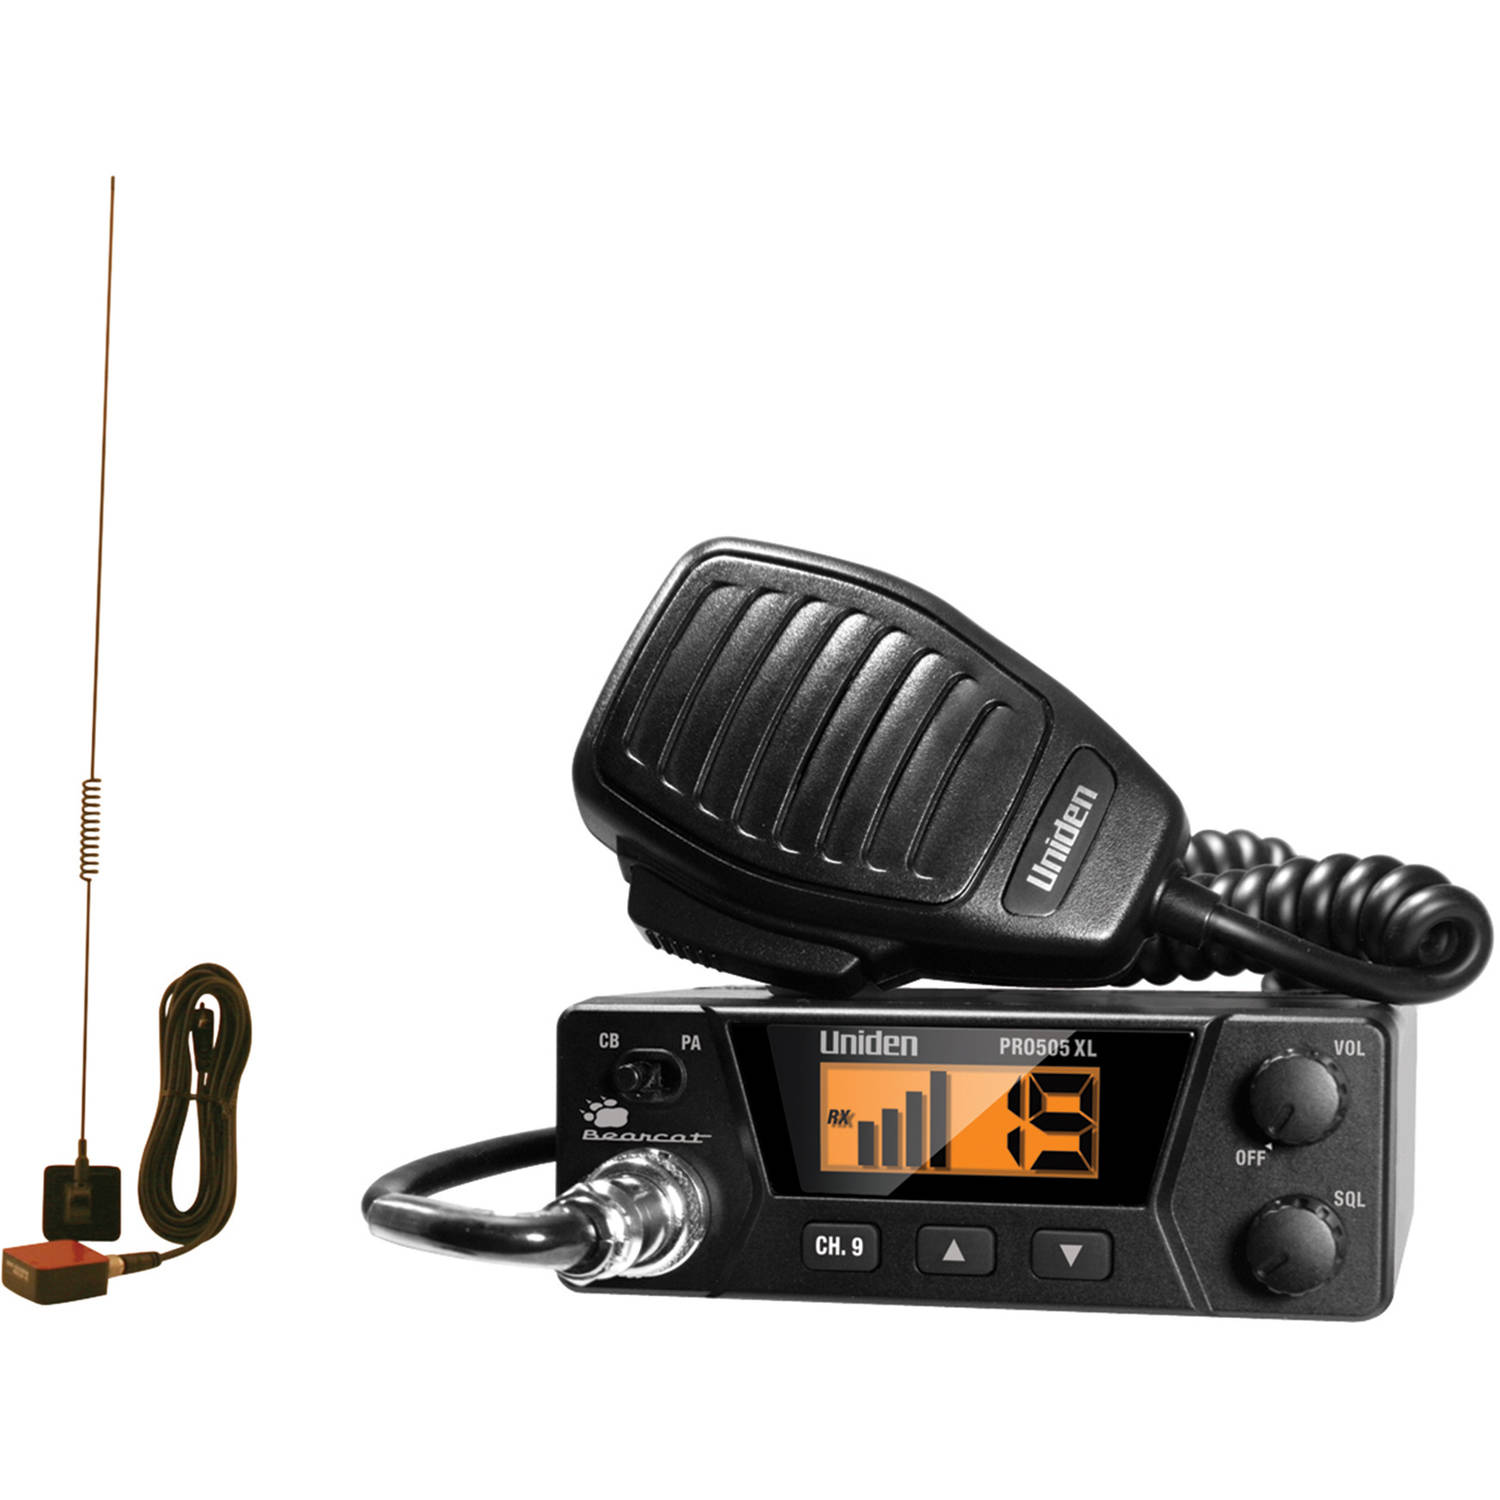 Uniden PRO505XL 40-Channel Bearcat Compact CB Radio and Tram 1198 Glass Mount CB With Weather-Band Mobile Antenna